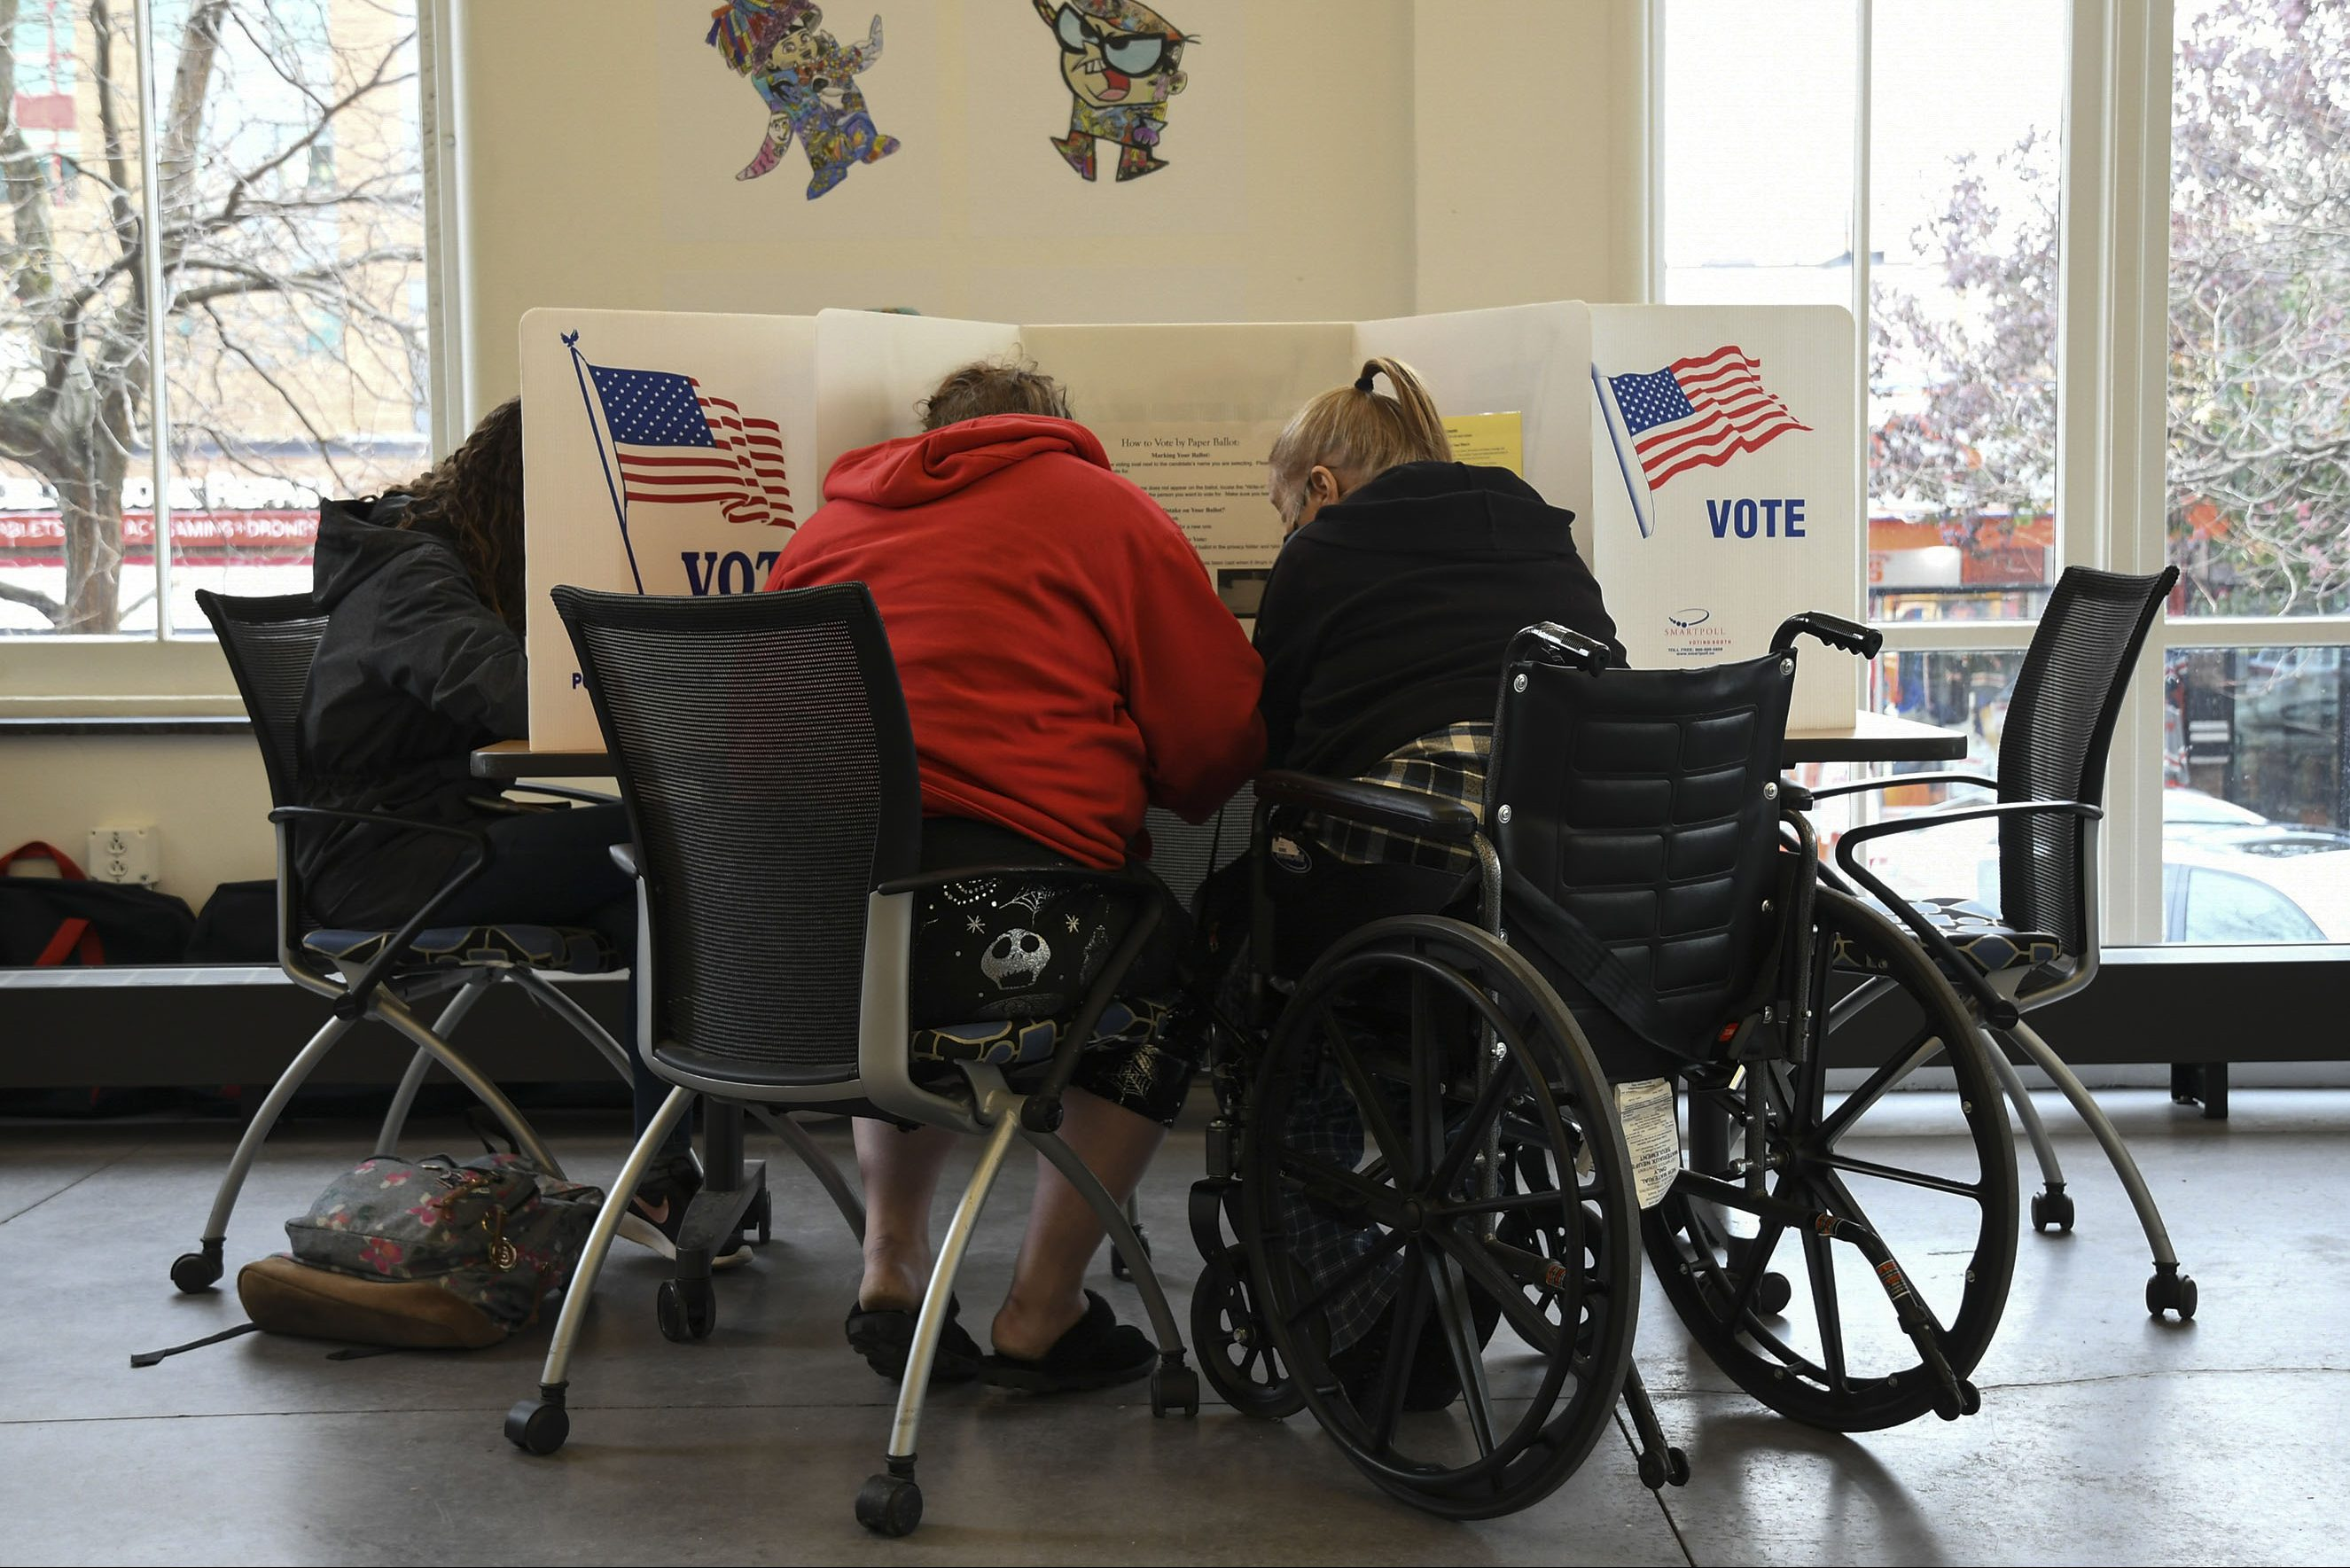 A voter with disablity receives accommodation in the voting process.